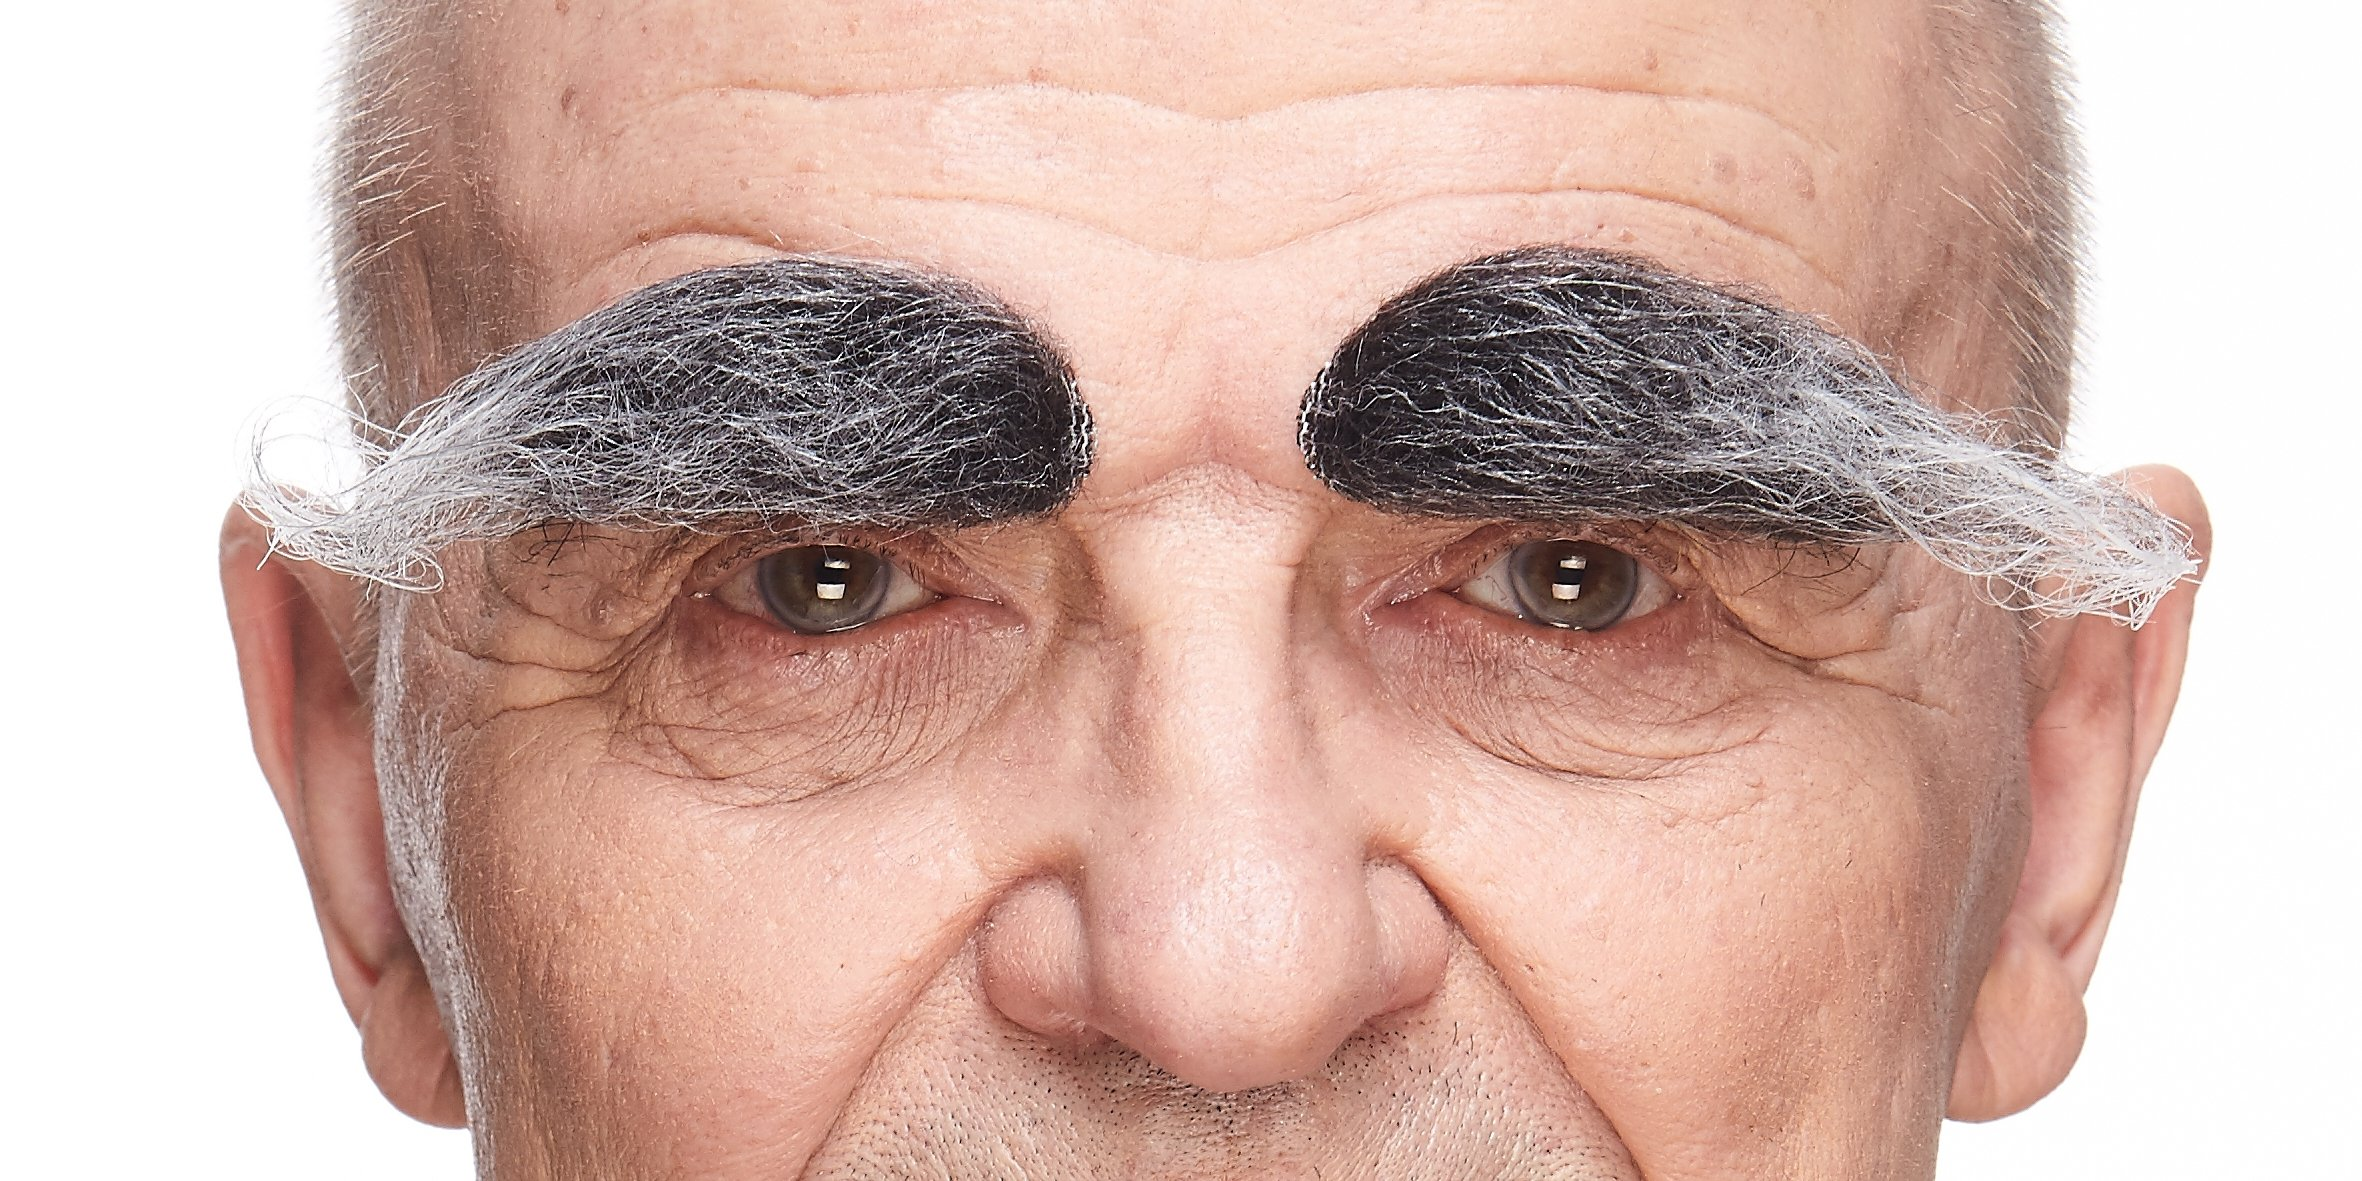 Mustaches Self Adhesive, Novelty, Realistic, Fake Eyebrows, Salt and Pepper Color